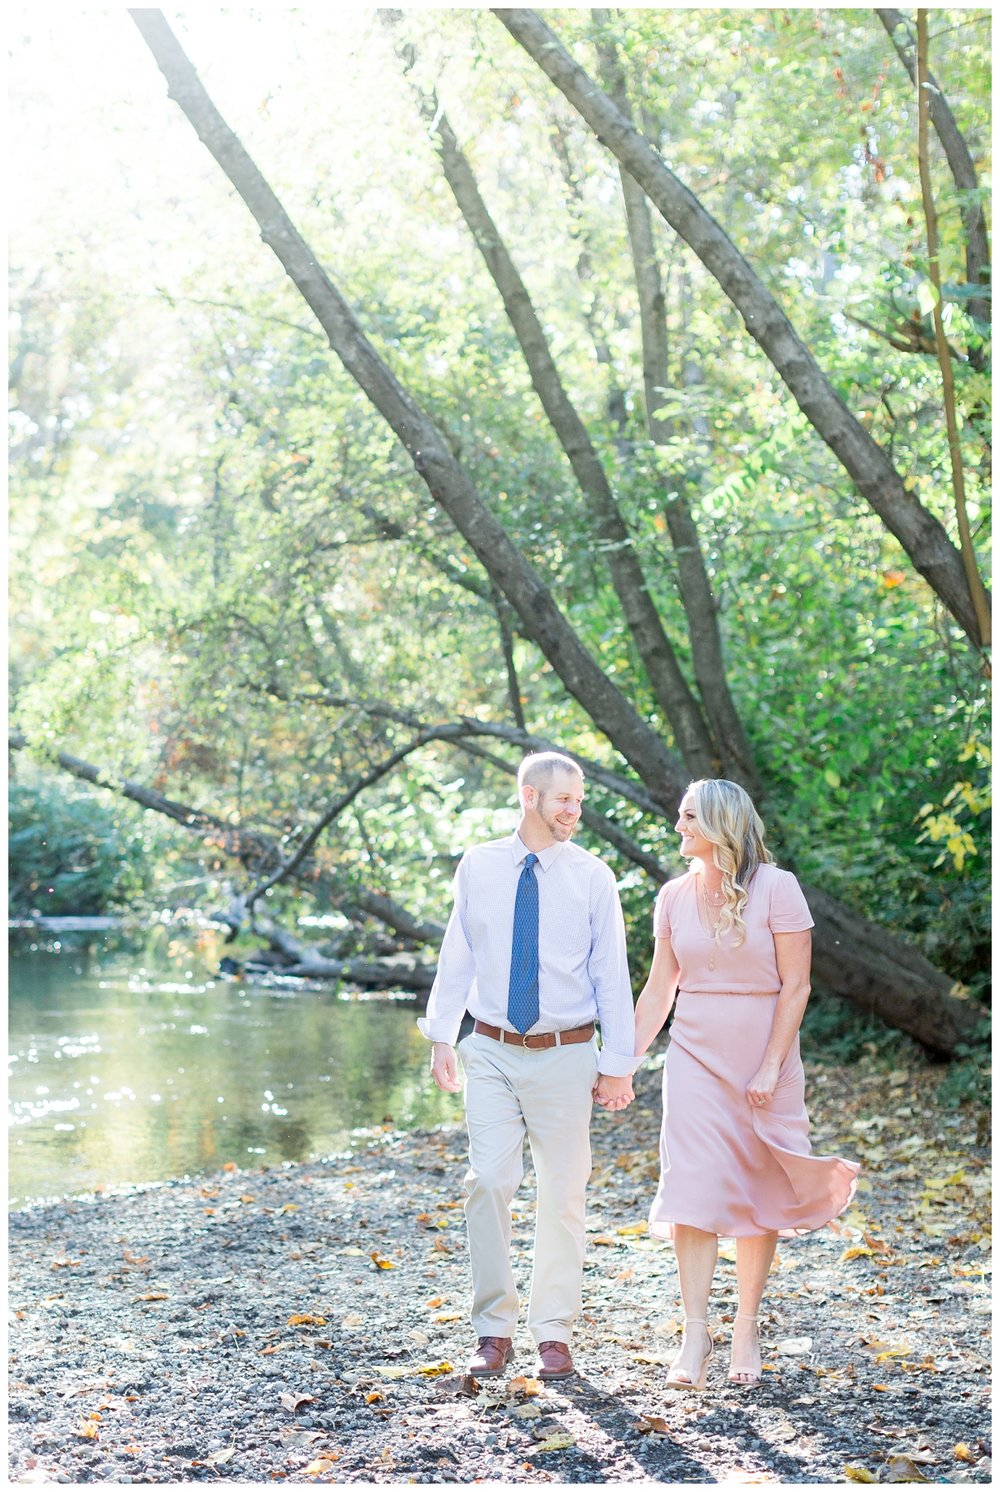 Lower Bidwell Park engagement photos taken next to the creek